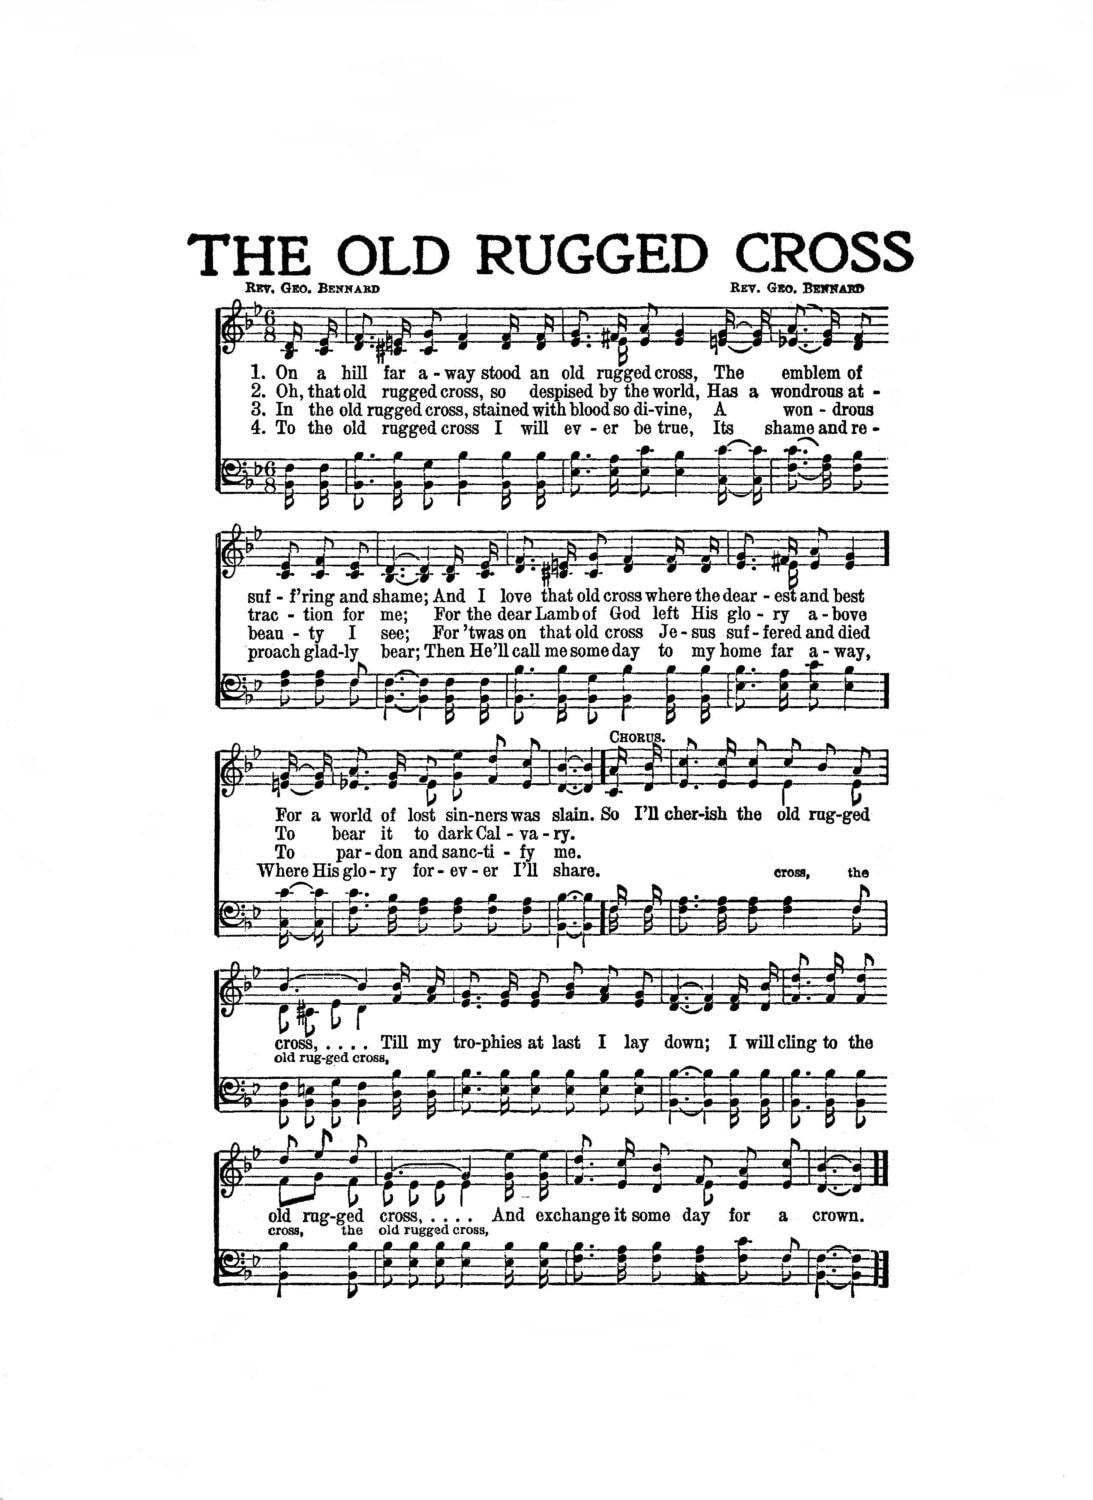 The Old Rugged Cross Hymn Digital Sheet Music Easter Christian